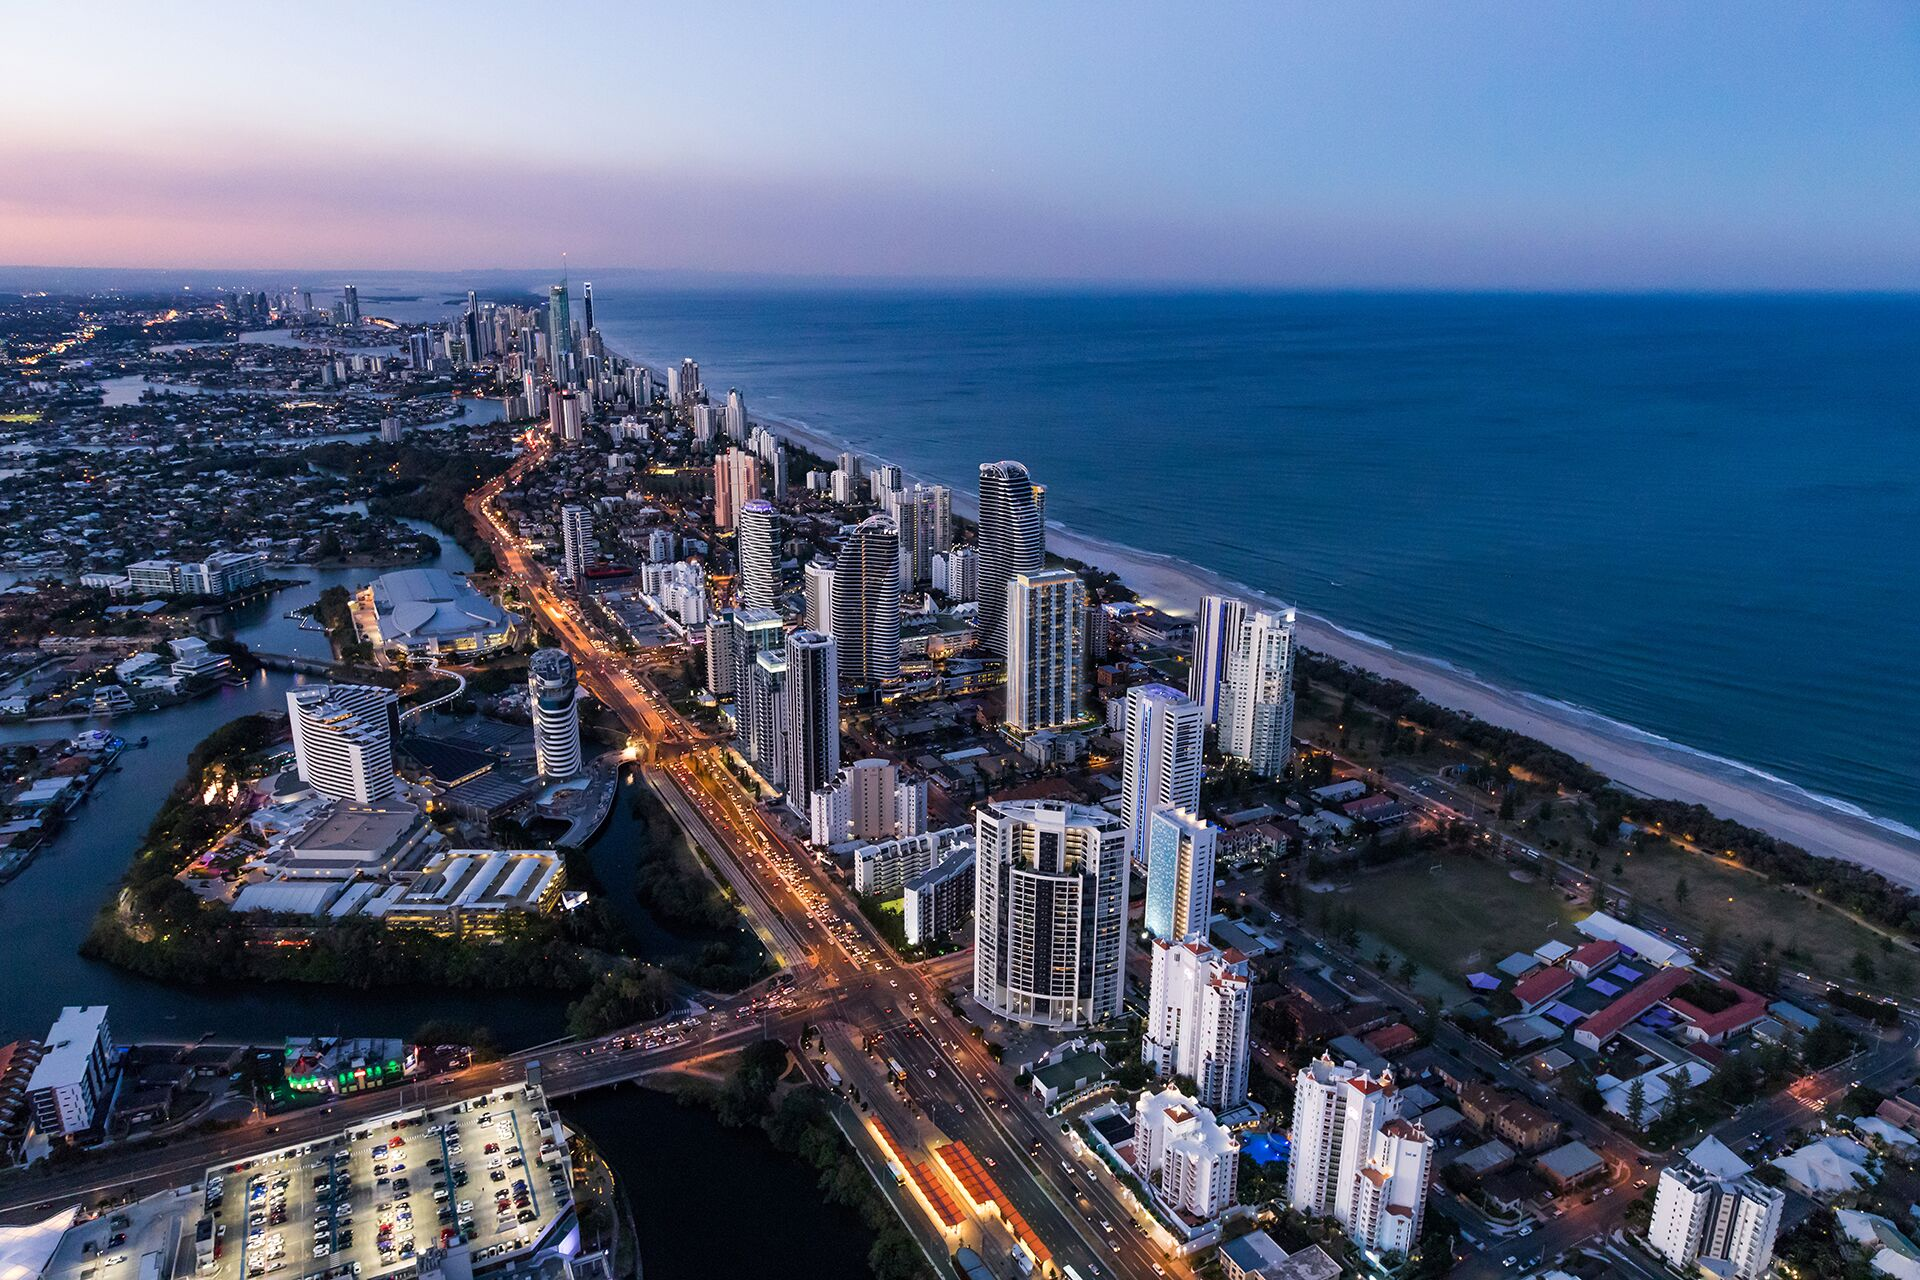 Strong fundamentals are attracting capital to back new residential development on the Gold Coast, explains Boulder Capital Managing Director Damian Winterburn.